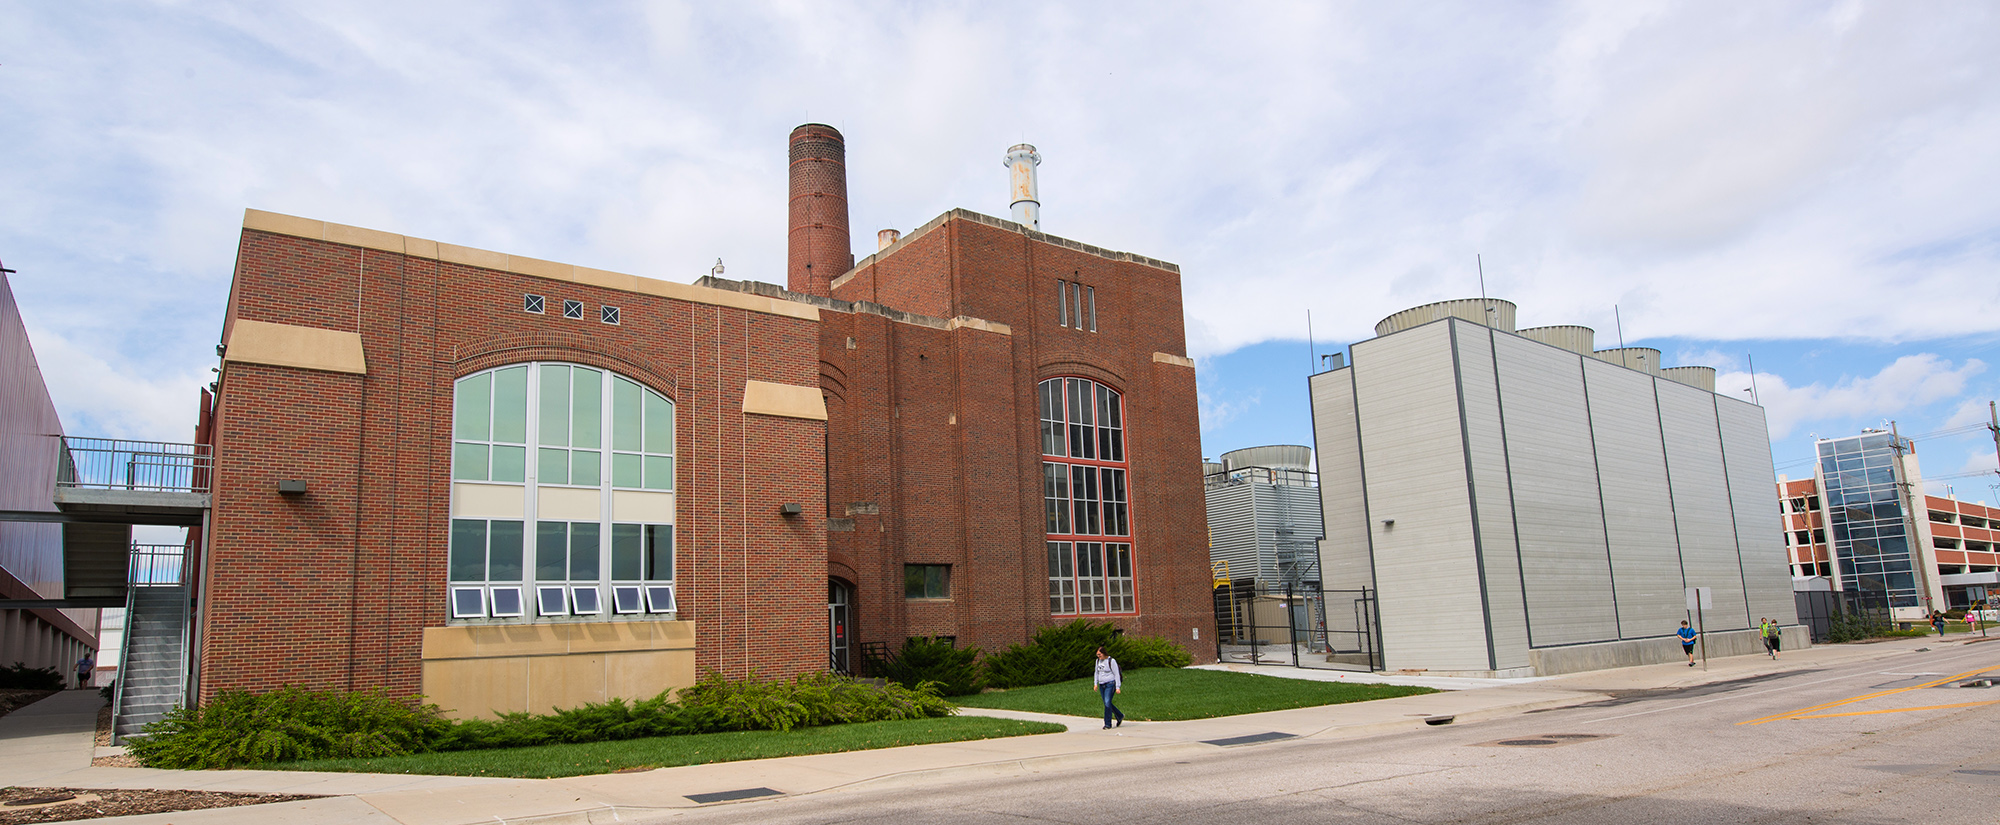 City Campus Utility Plant with new cooling towers